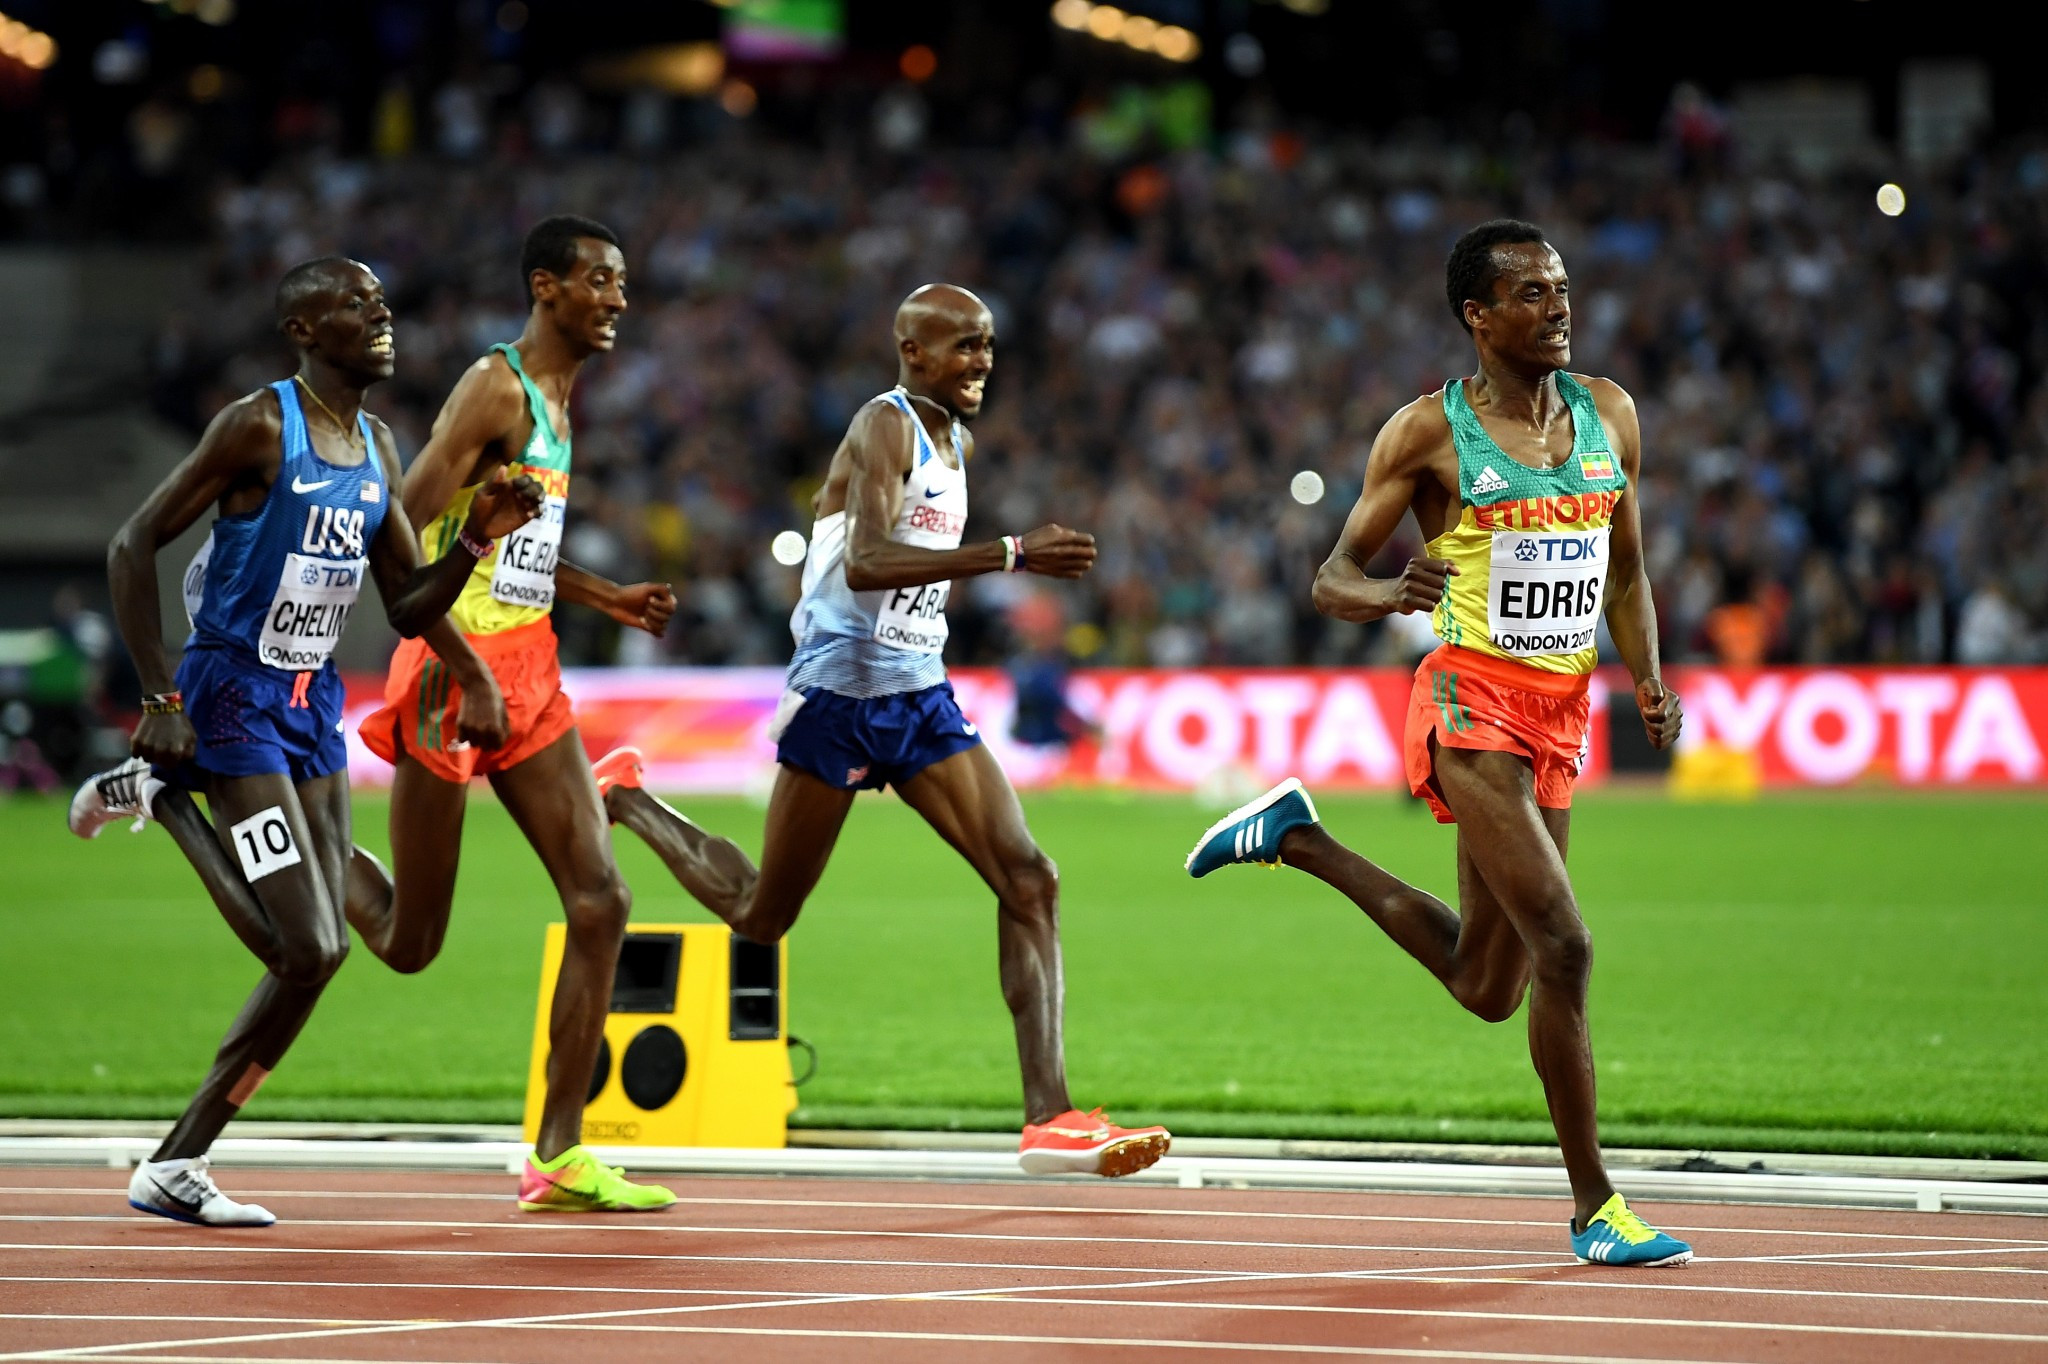 Ethiopia's Muktar Edris sprinted clear on the last lap of the 5,000m to beat Britain's Sir Mo Farah ©Getty Images